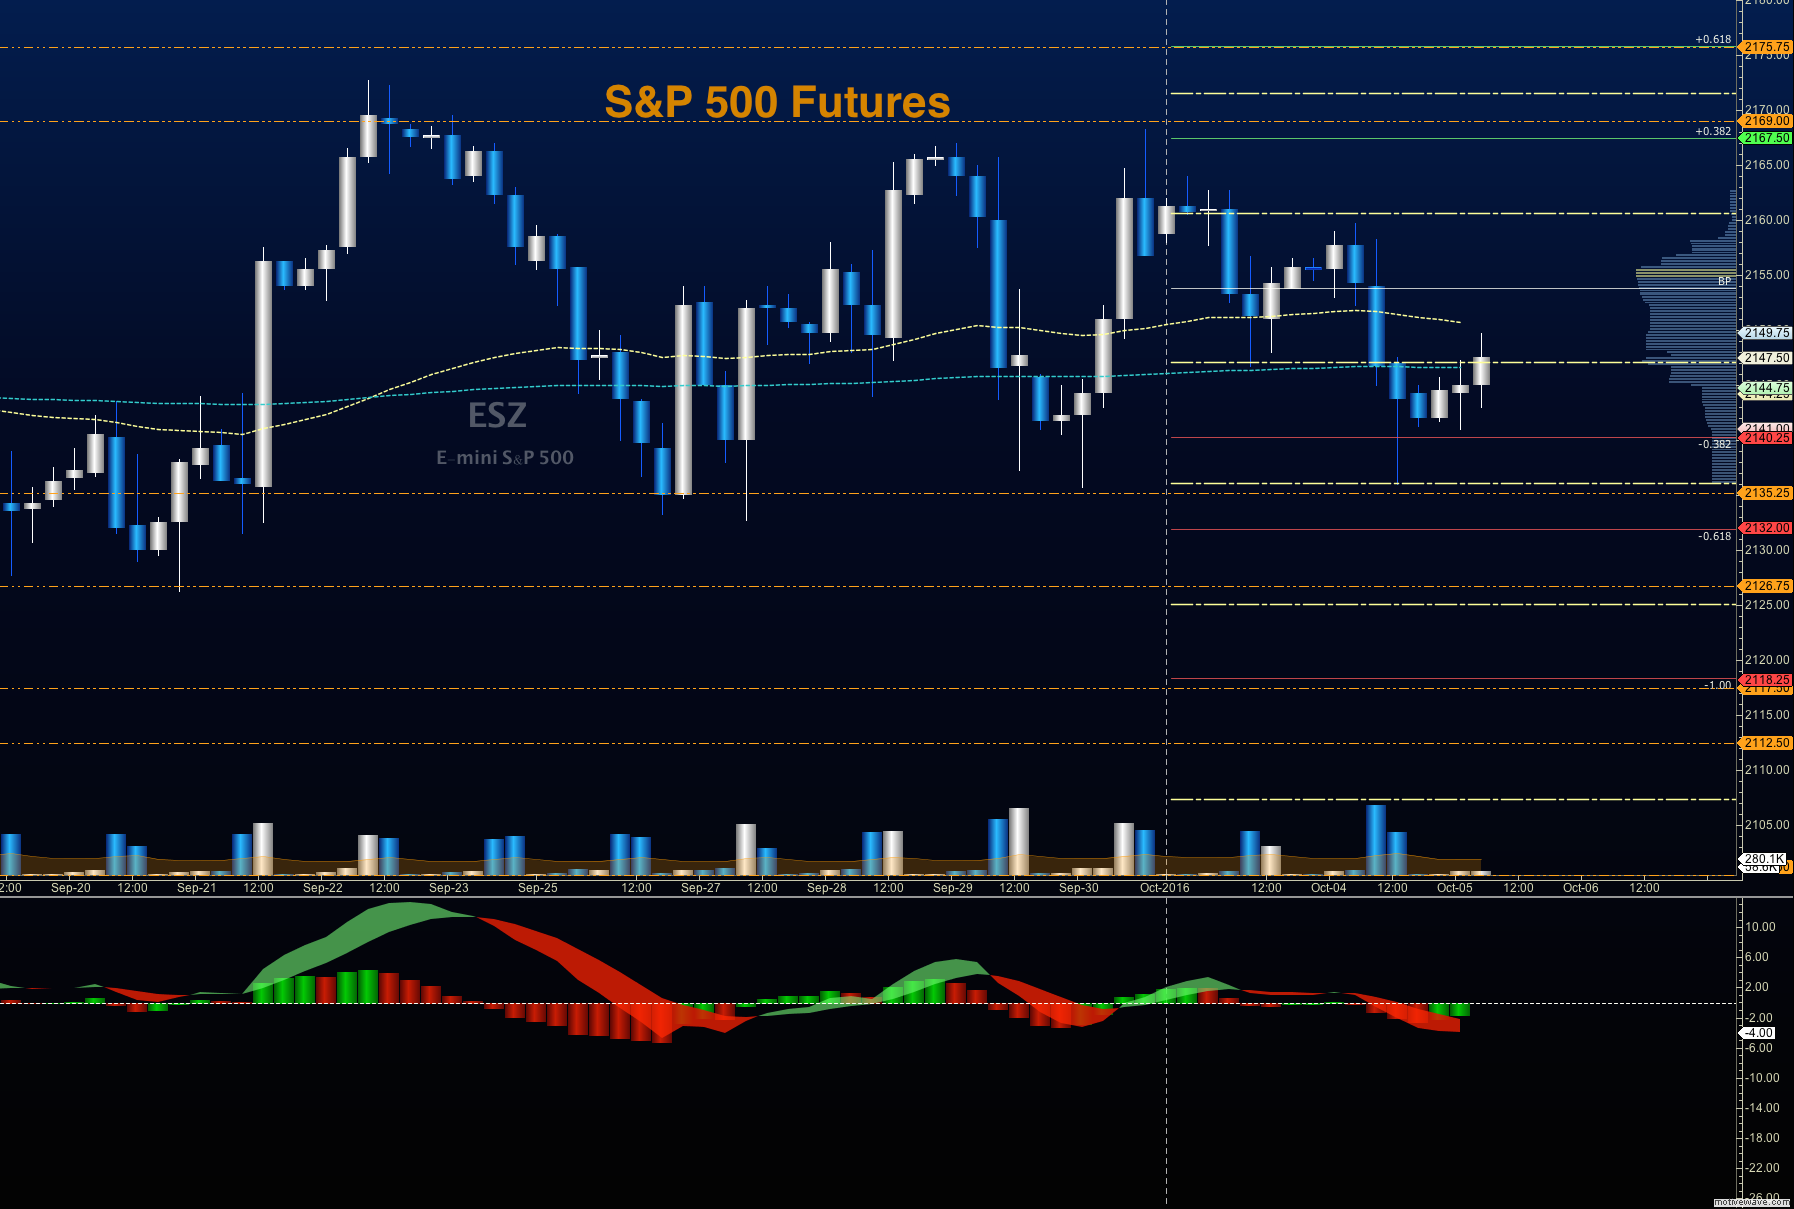 How to trade s&p futures options